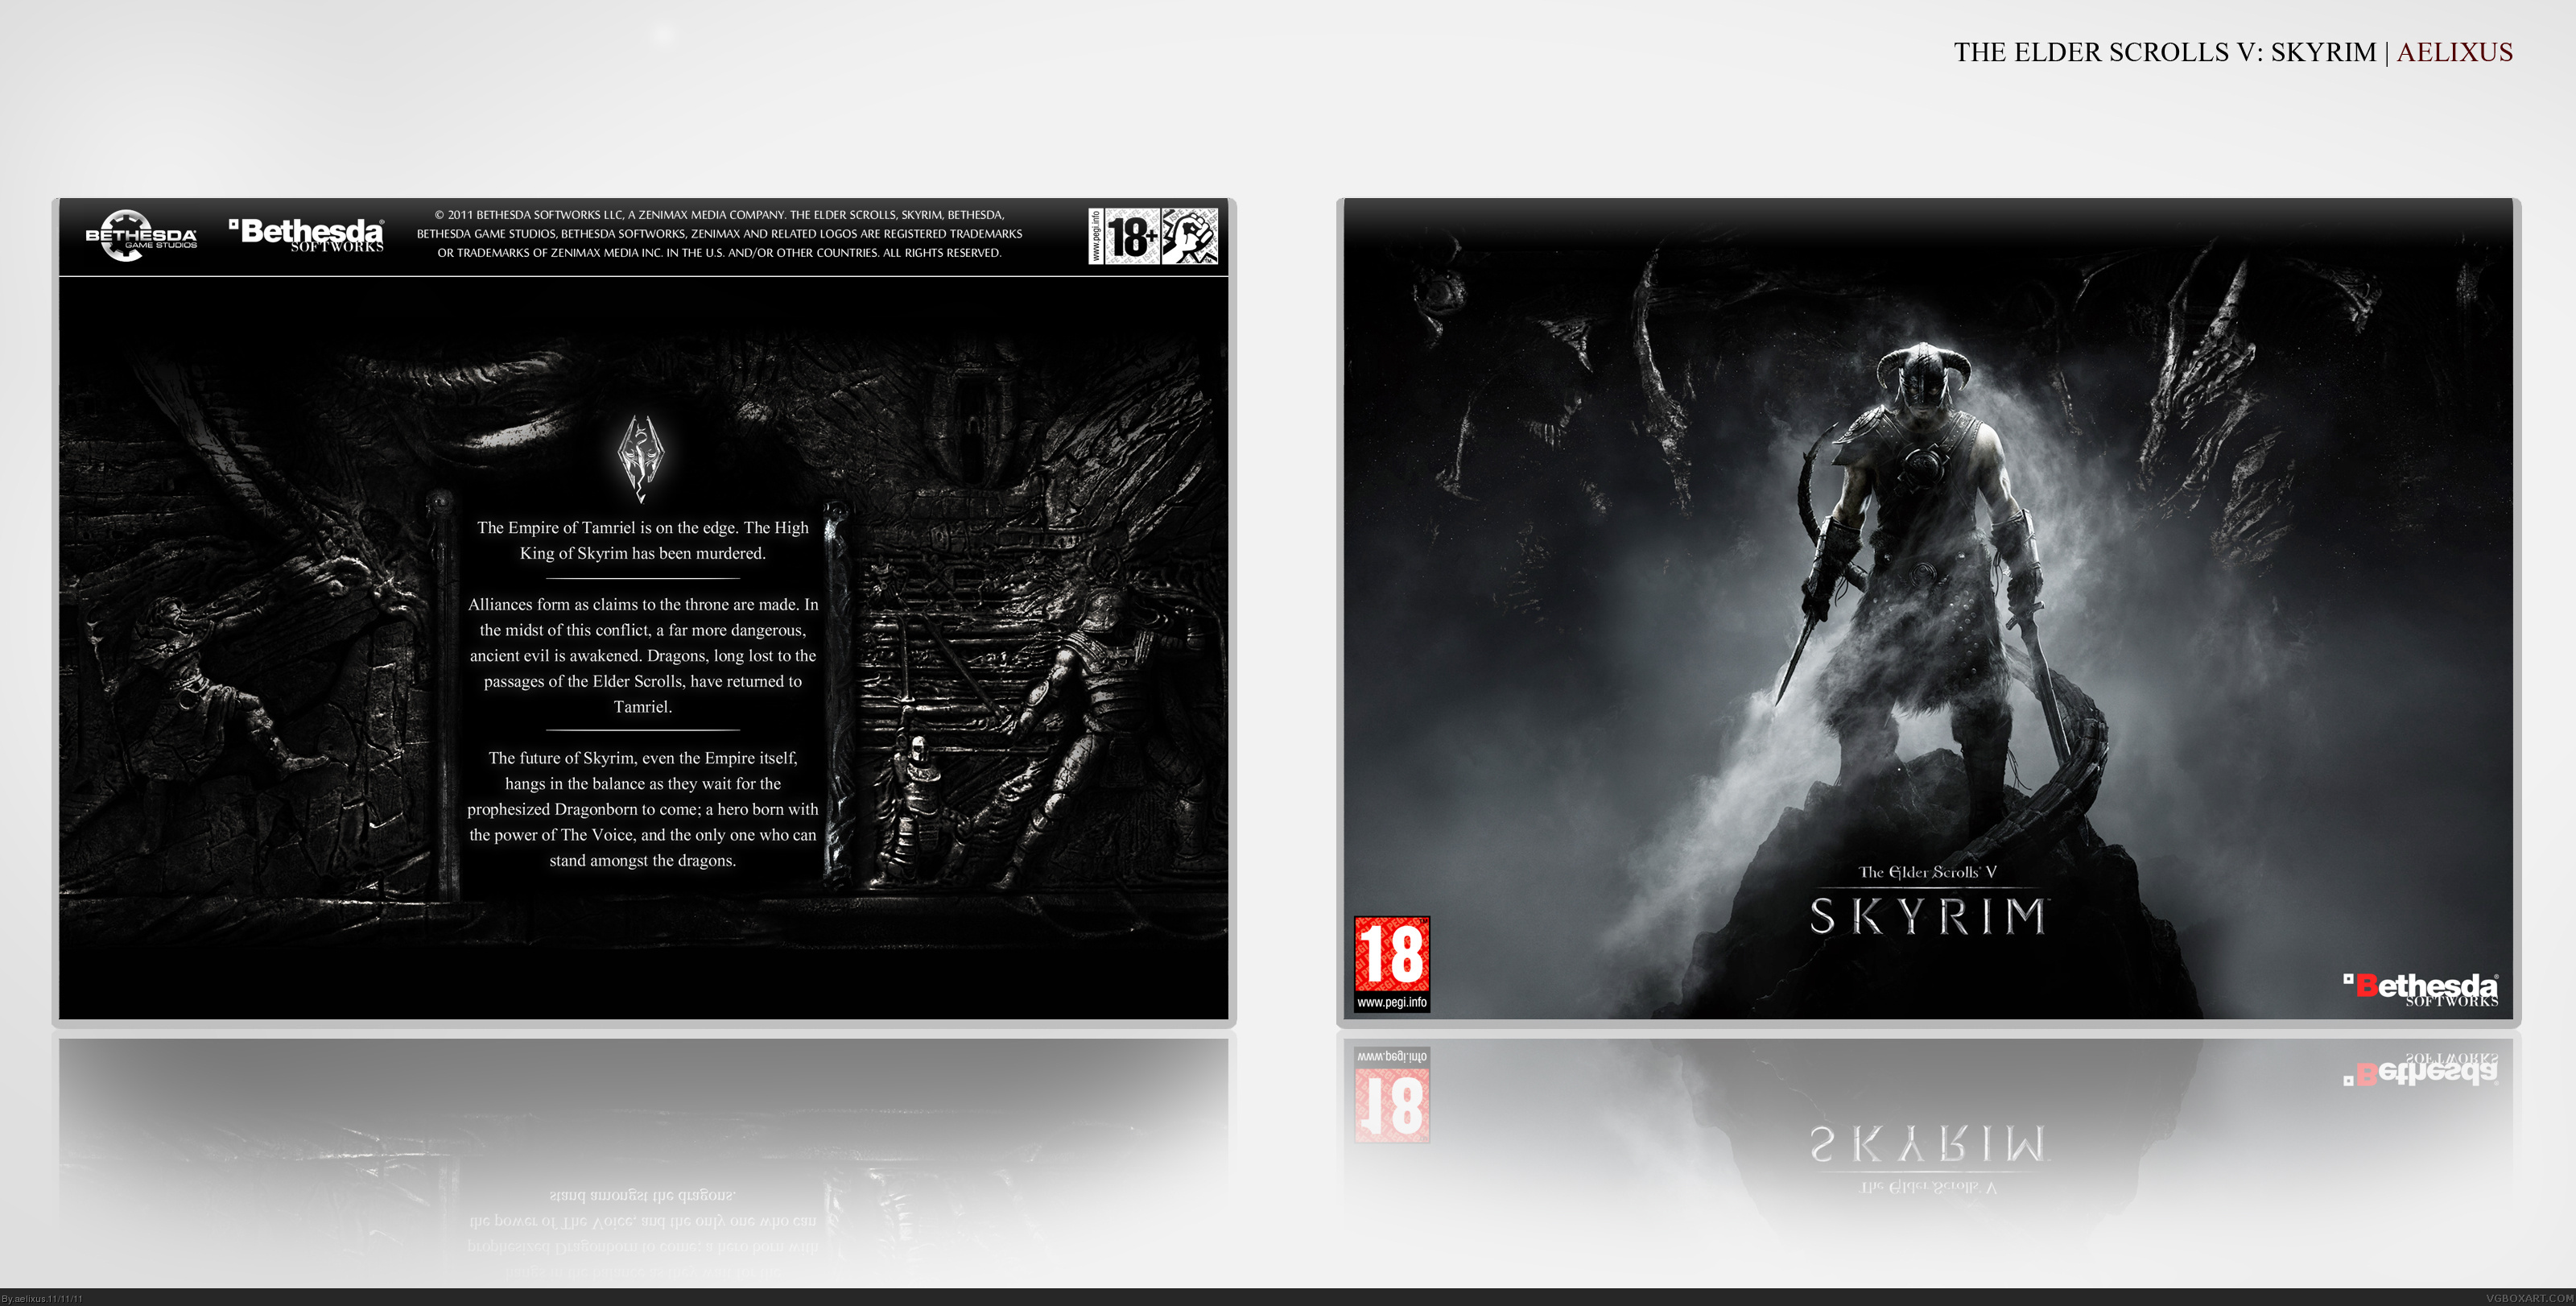 The Elder Scrolls V: Skyrim box cover